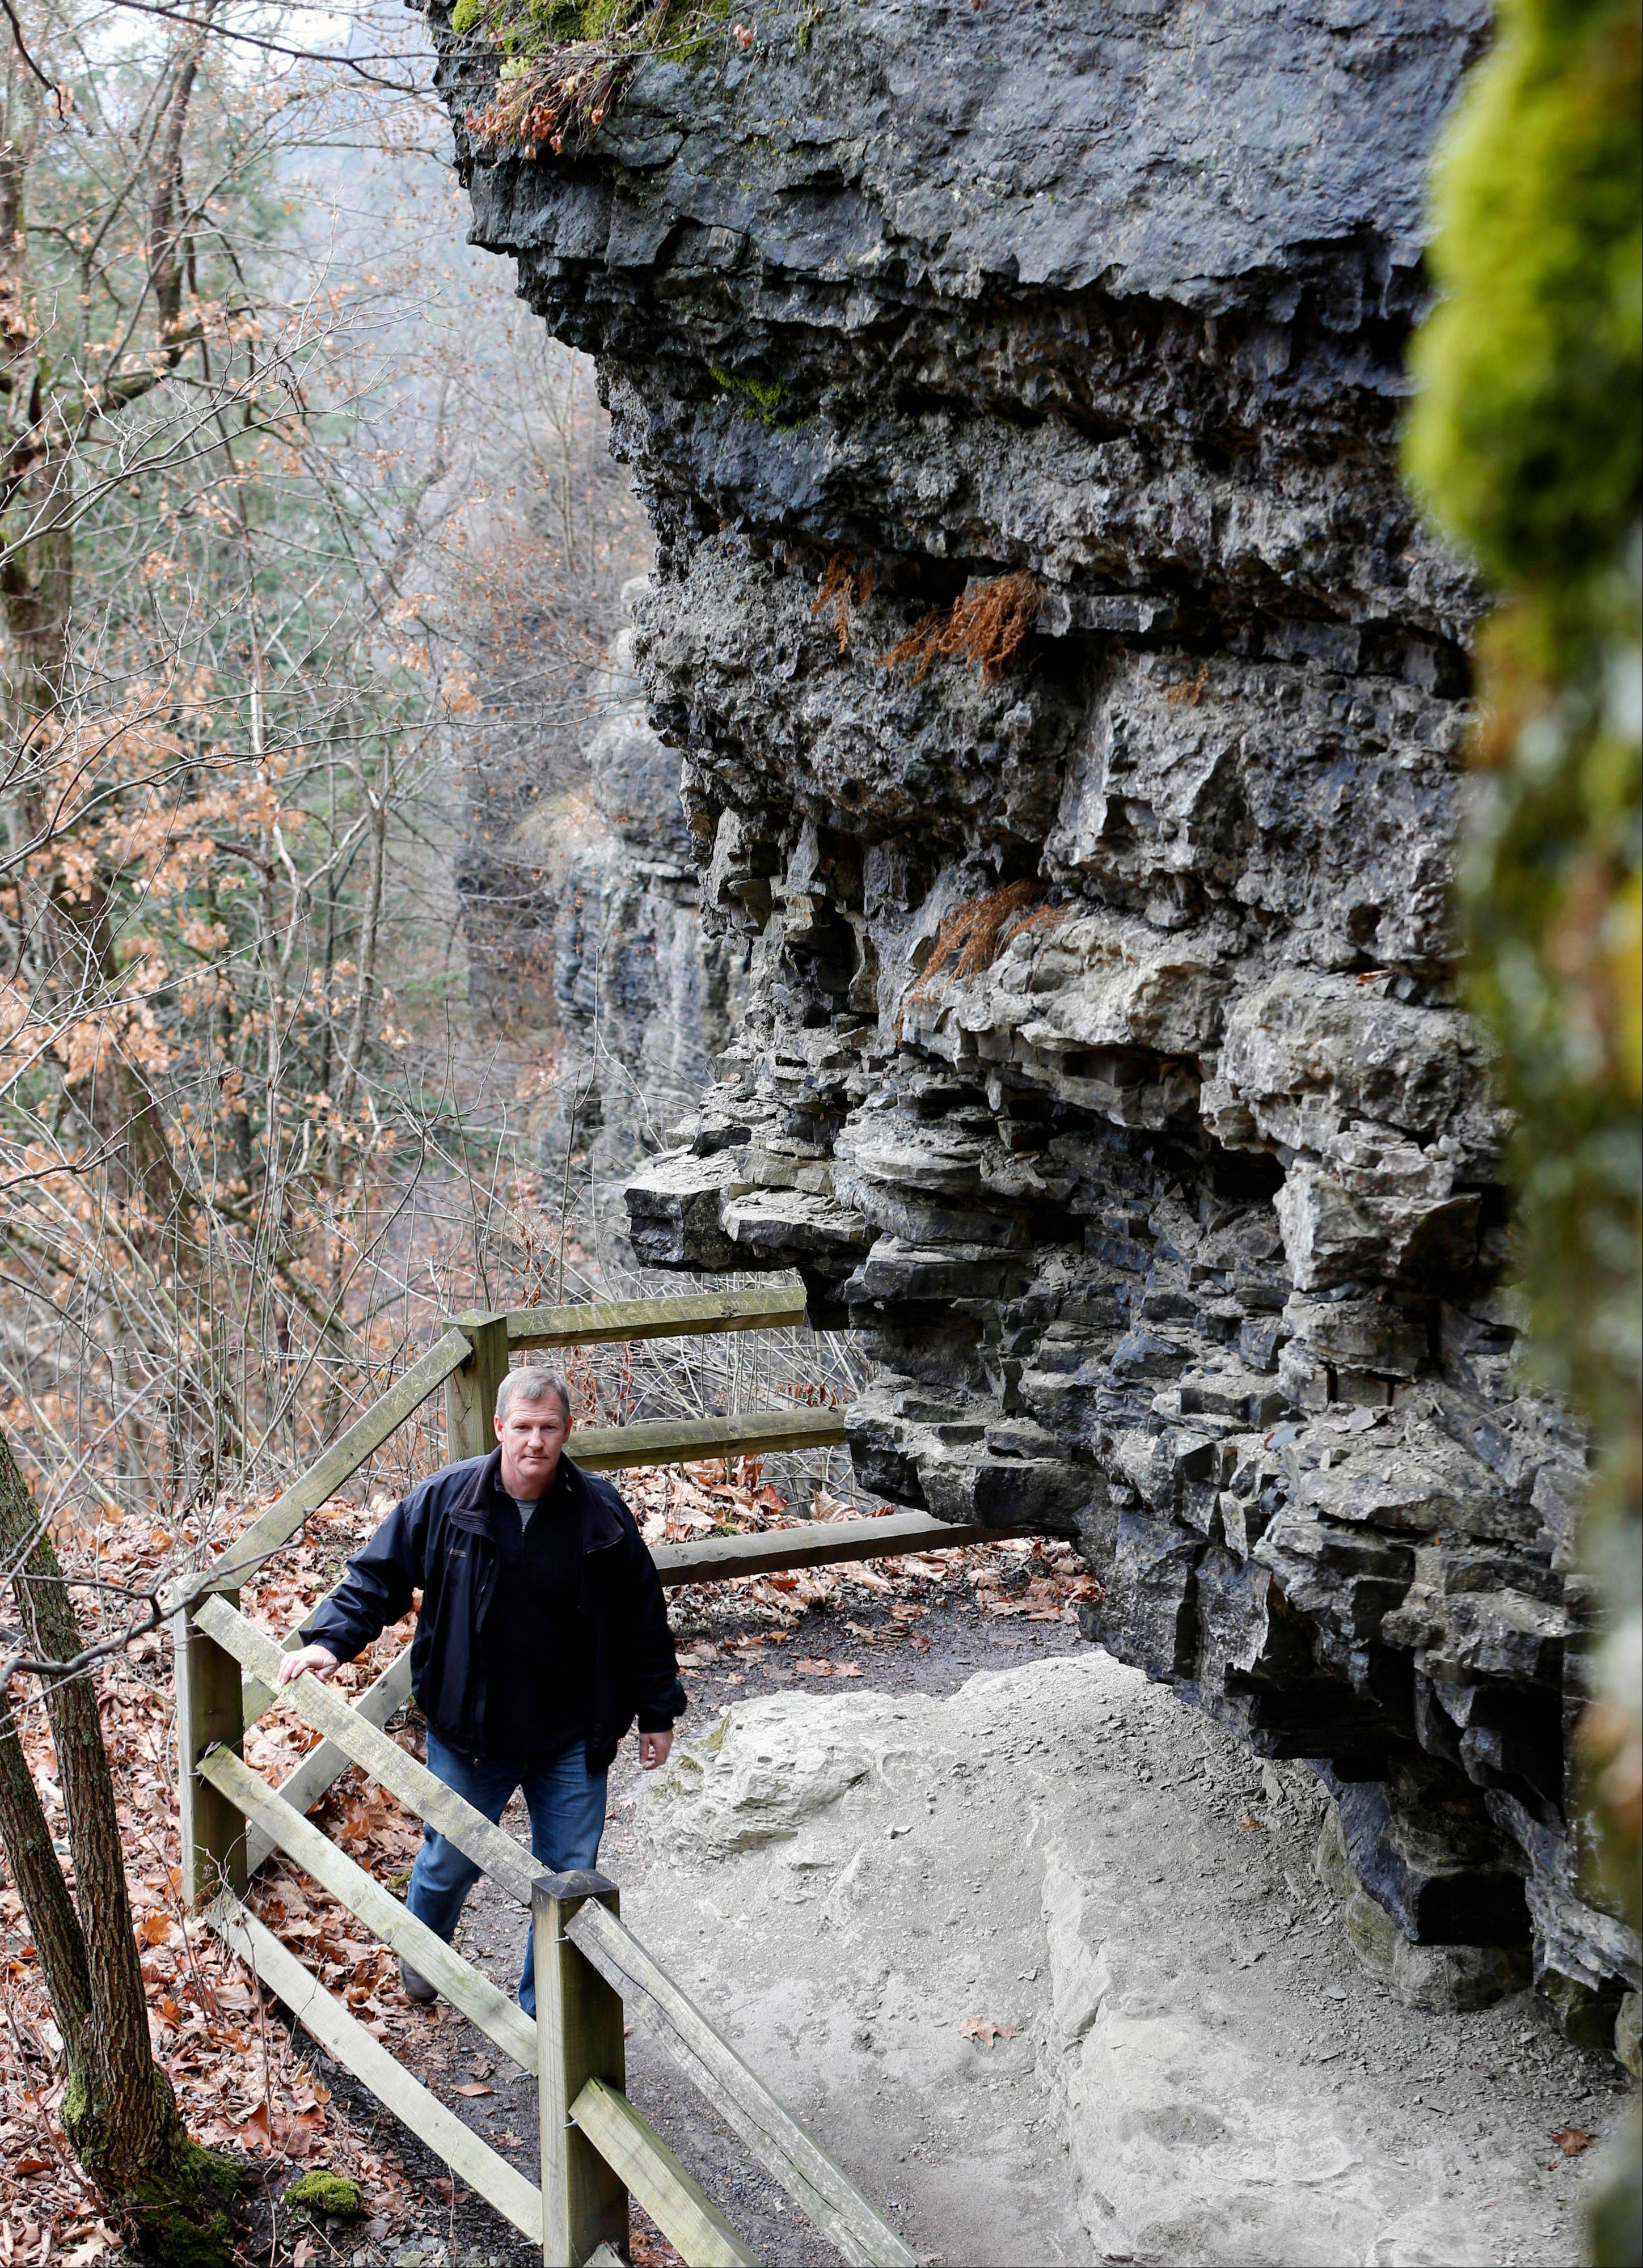 Chris Fallon, manager at John Boyd Thacher State Park, walks along the Indian Ladder trail in Guilderland, N.Y.